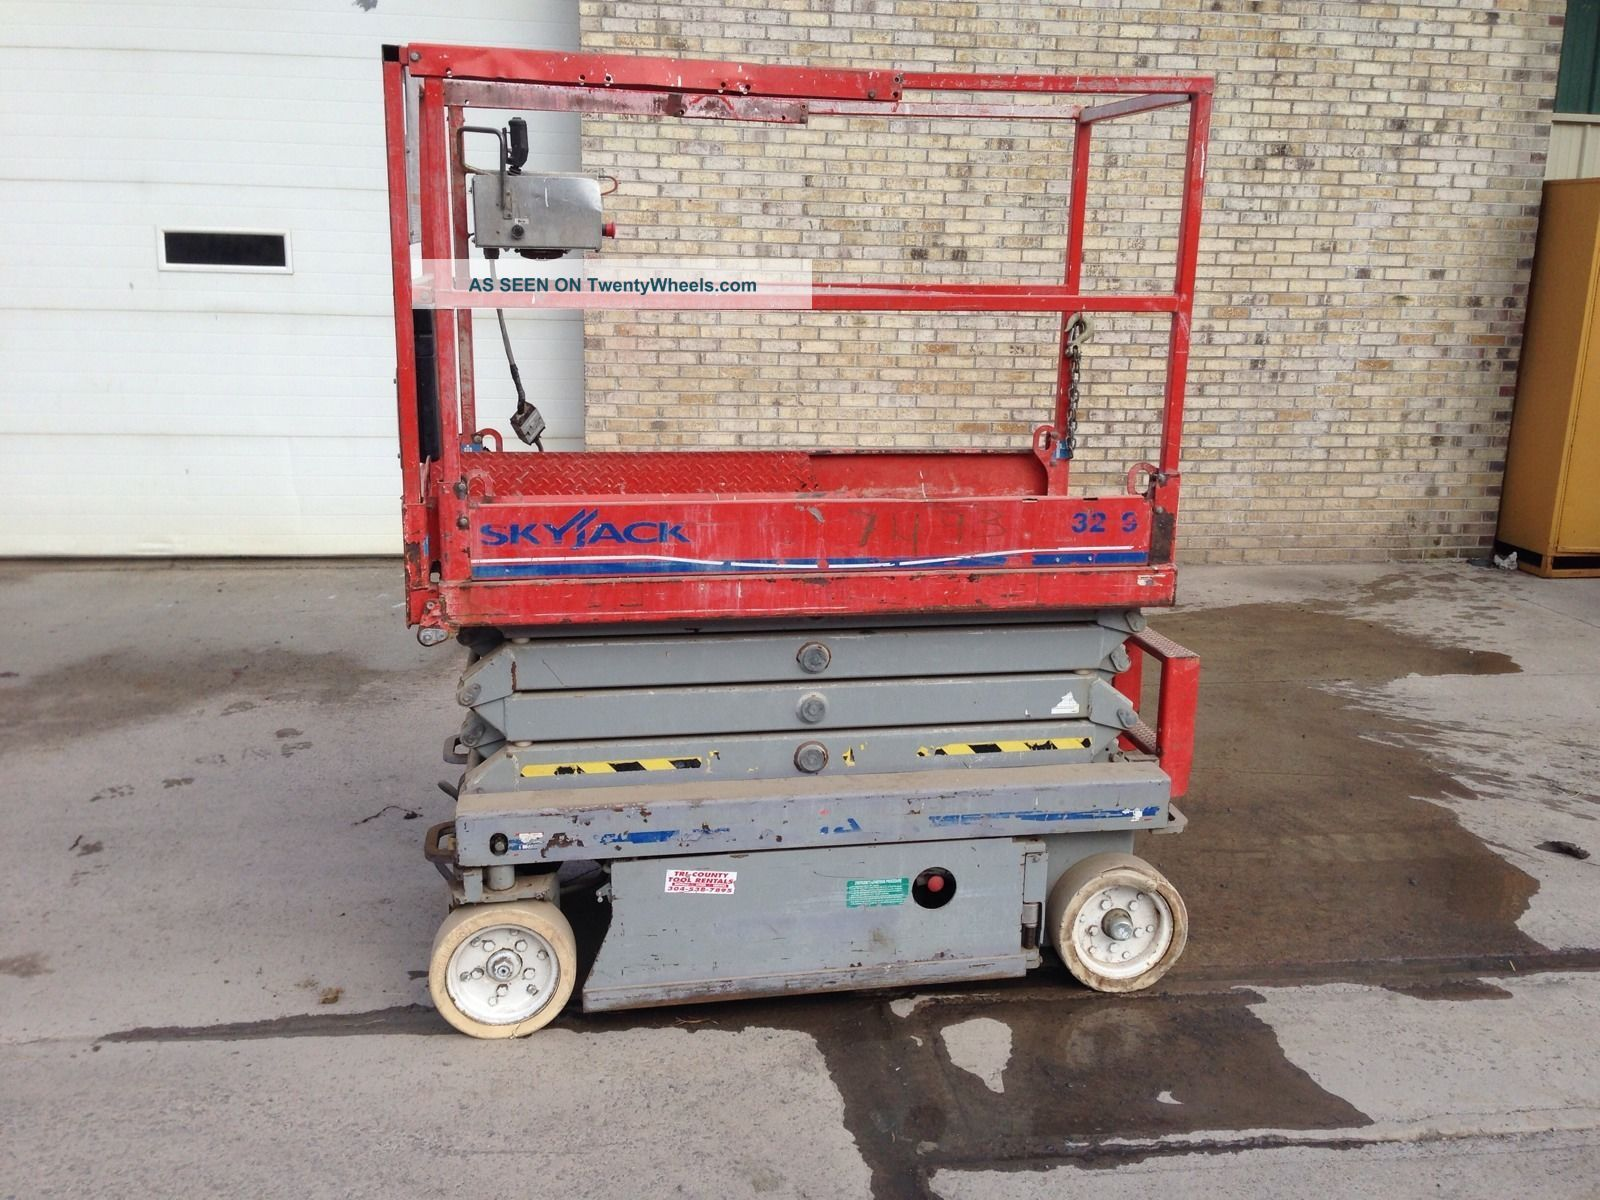 Skyjack Scissor Lift 3219 Other photo